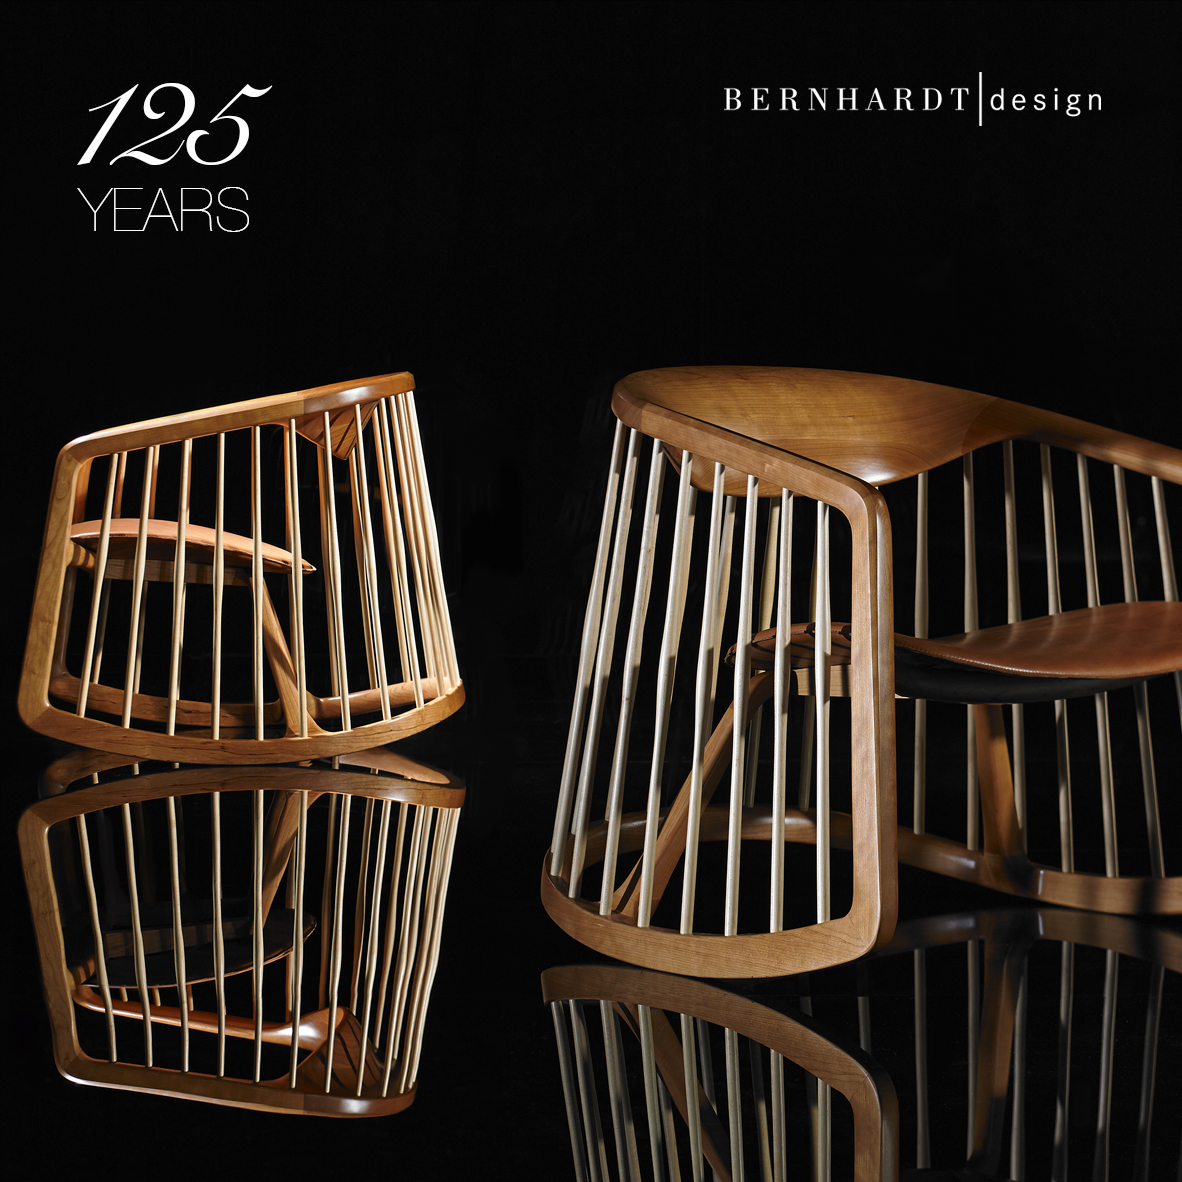 Furniture For Thought | Bernhardt Design